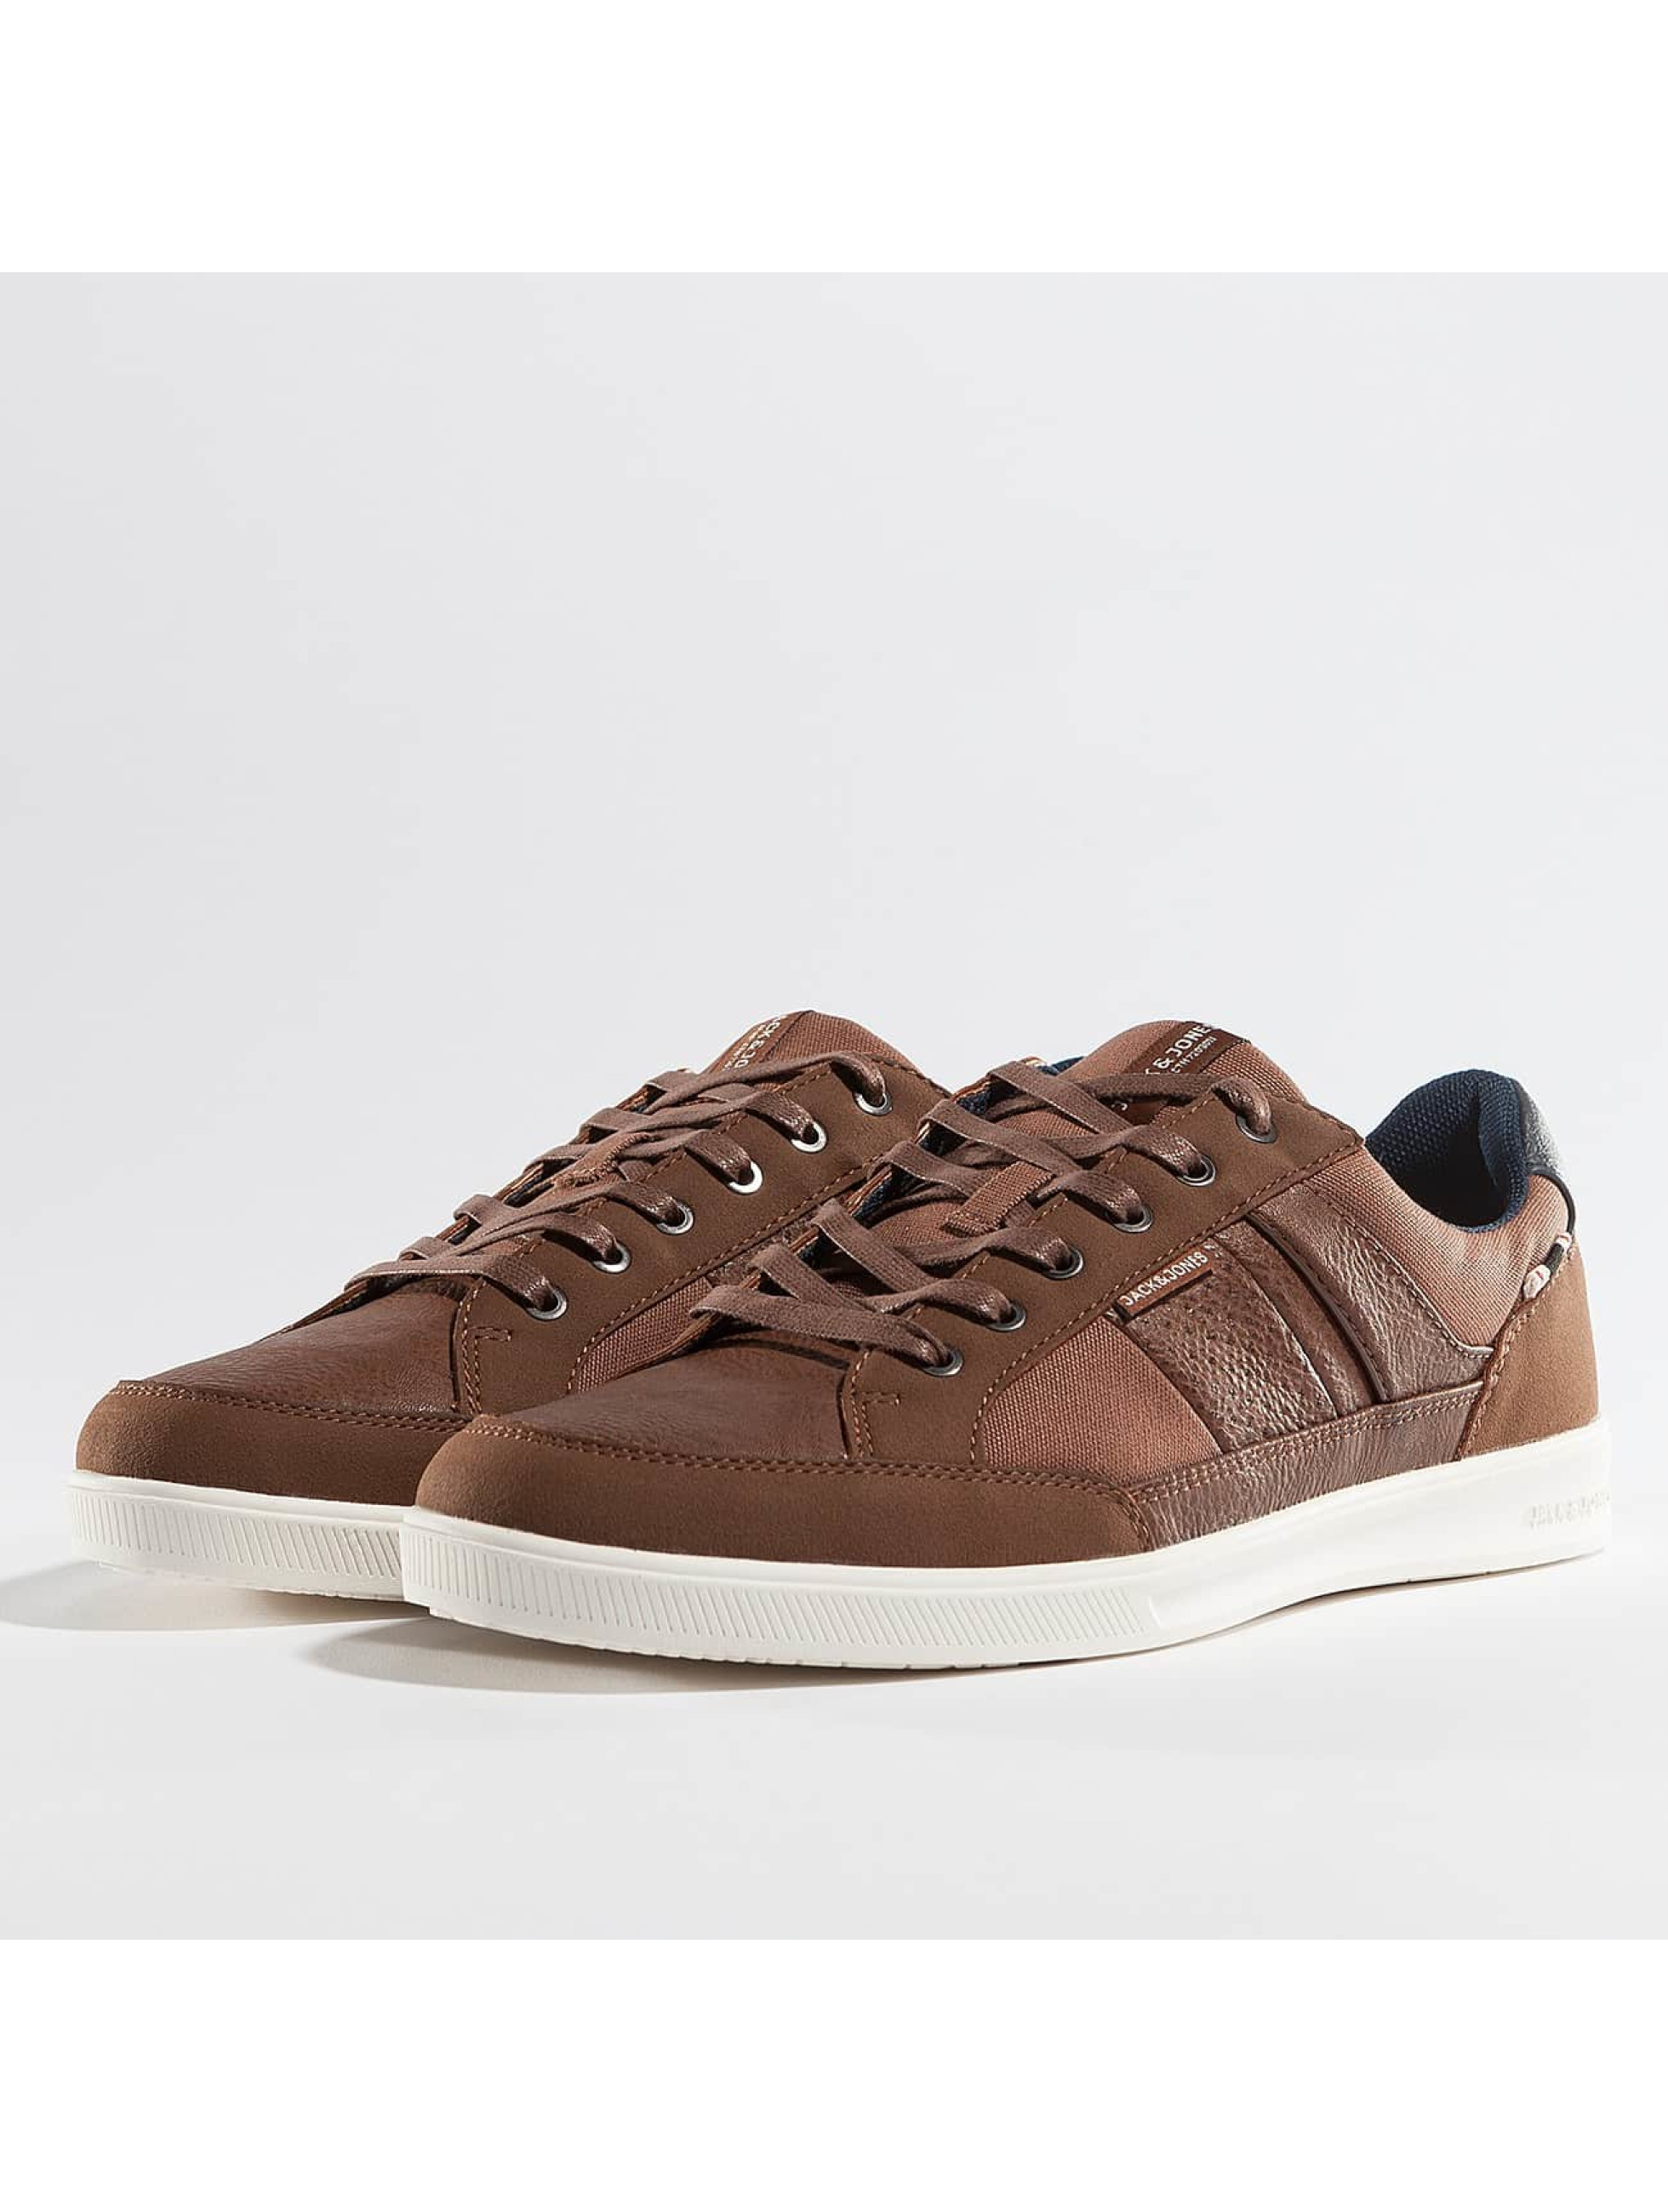 Jack & Jones Sneaker jfwRayne marrone